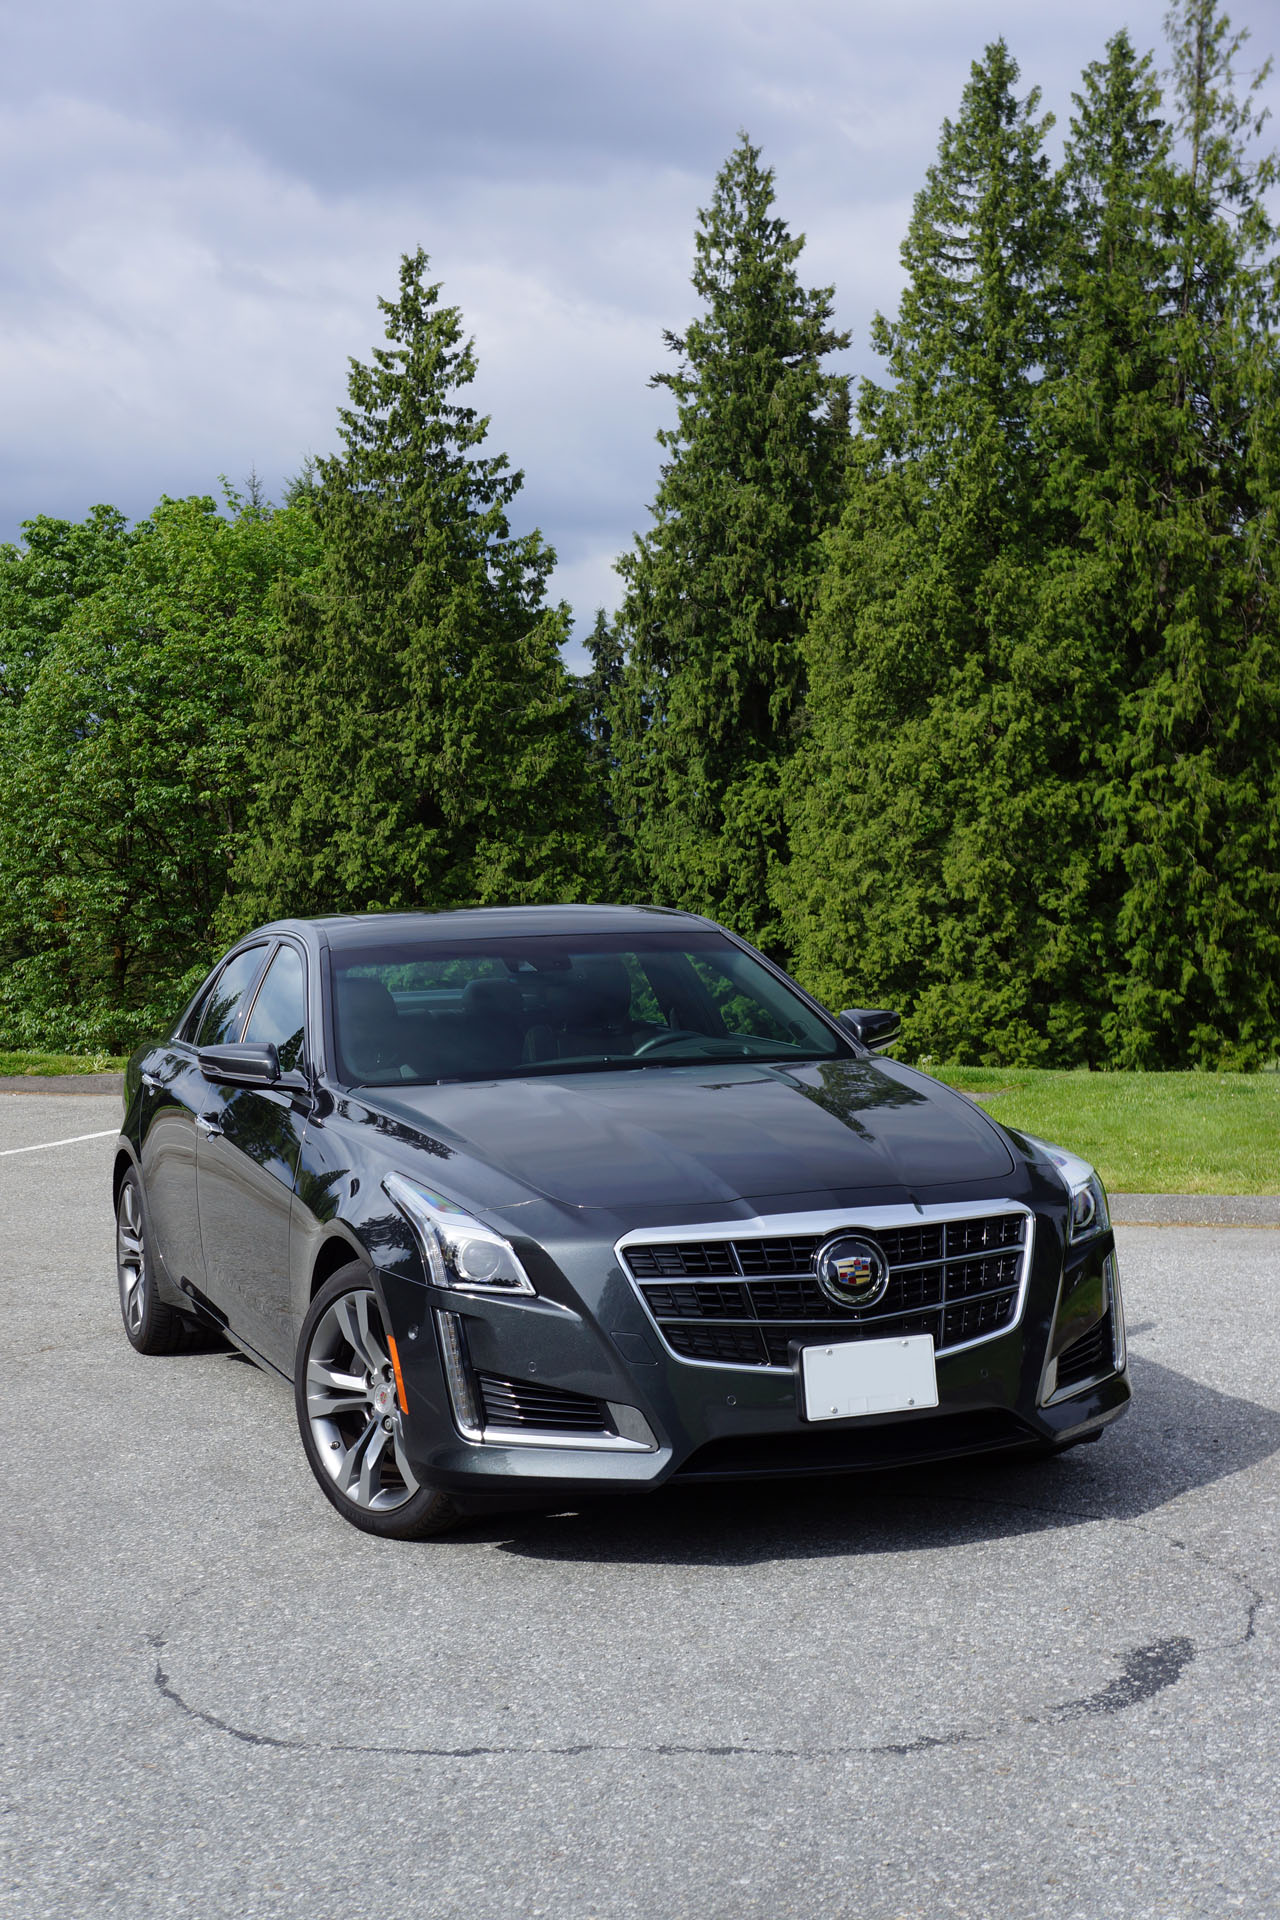 2014 cadillac cts vsport road test review | the car magazine